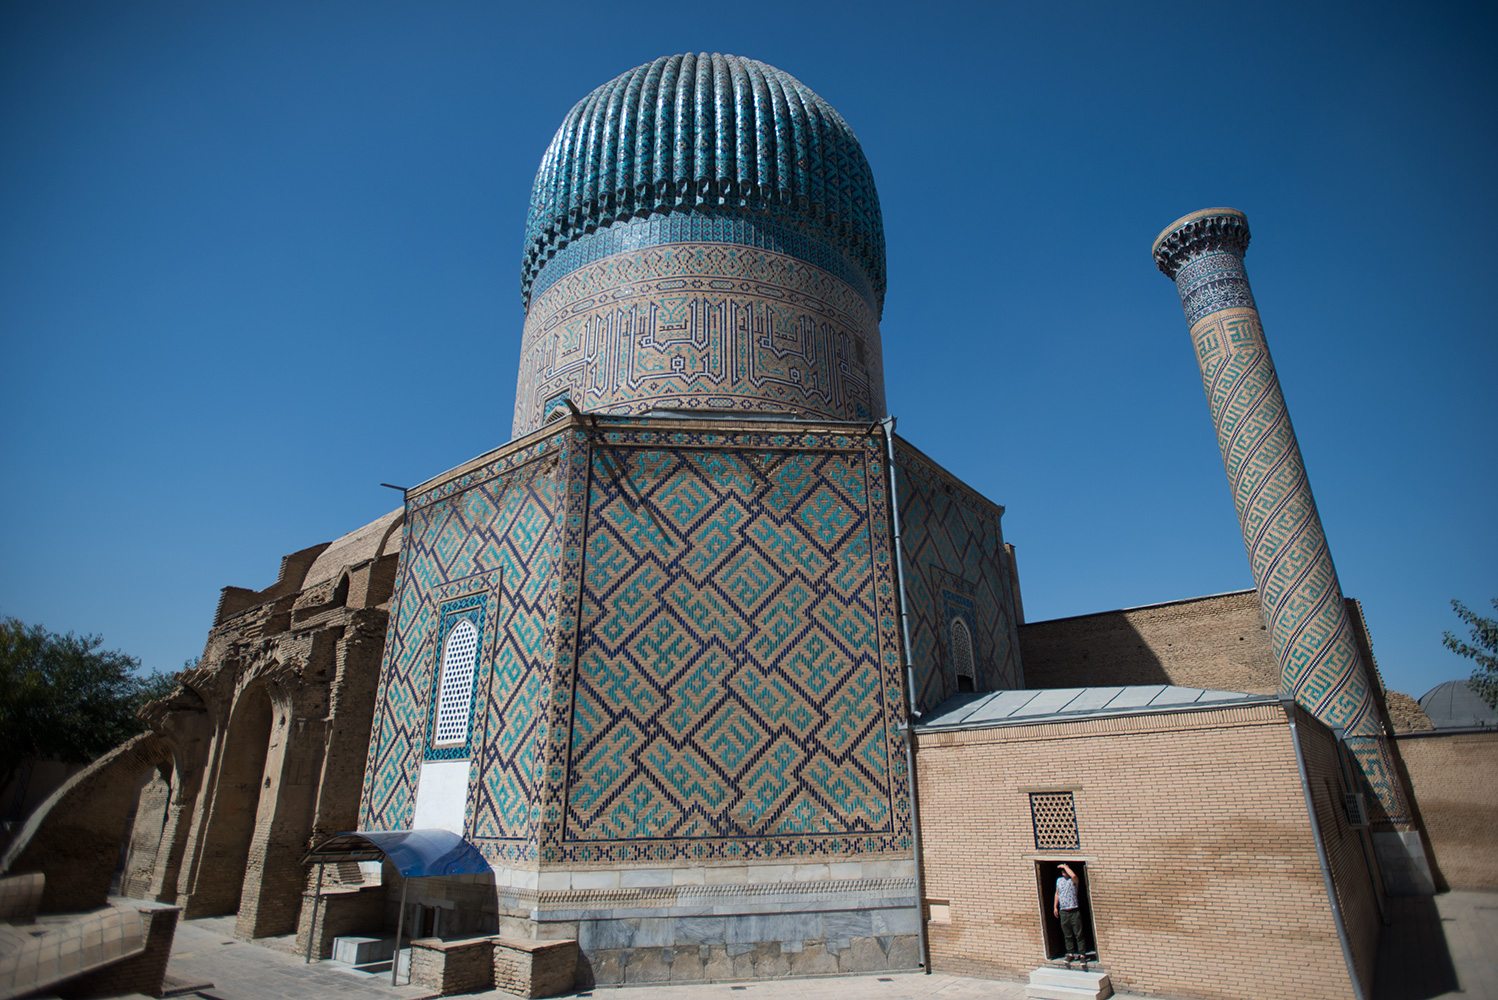 The Mausoleum of the Emir Timur